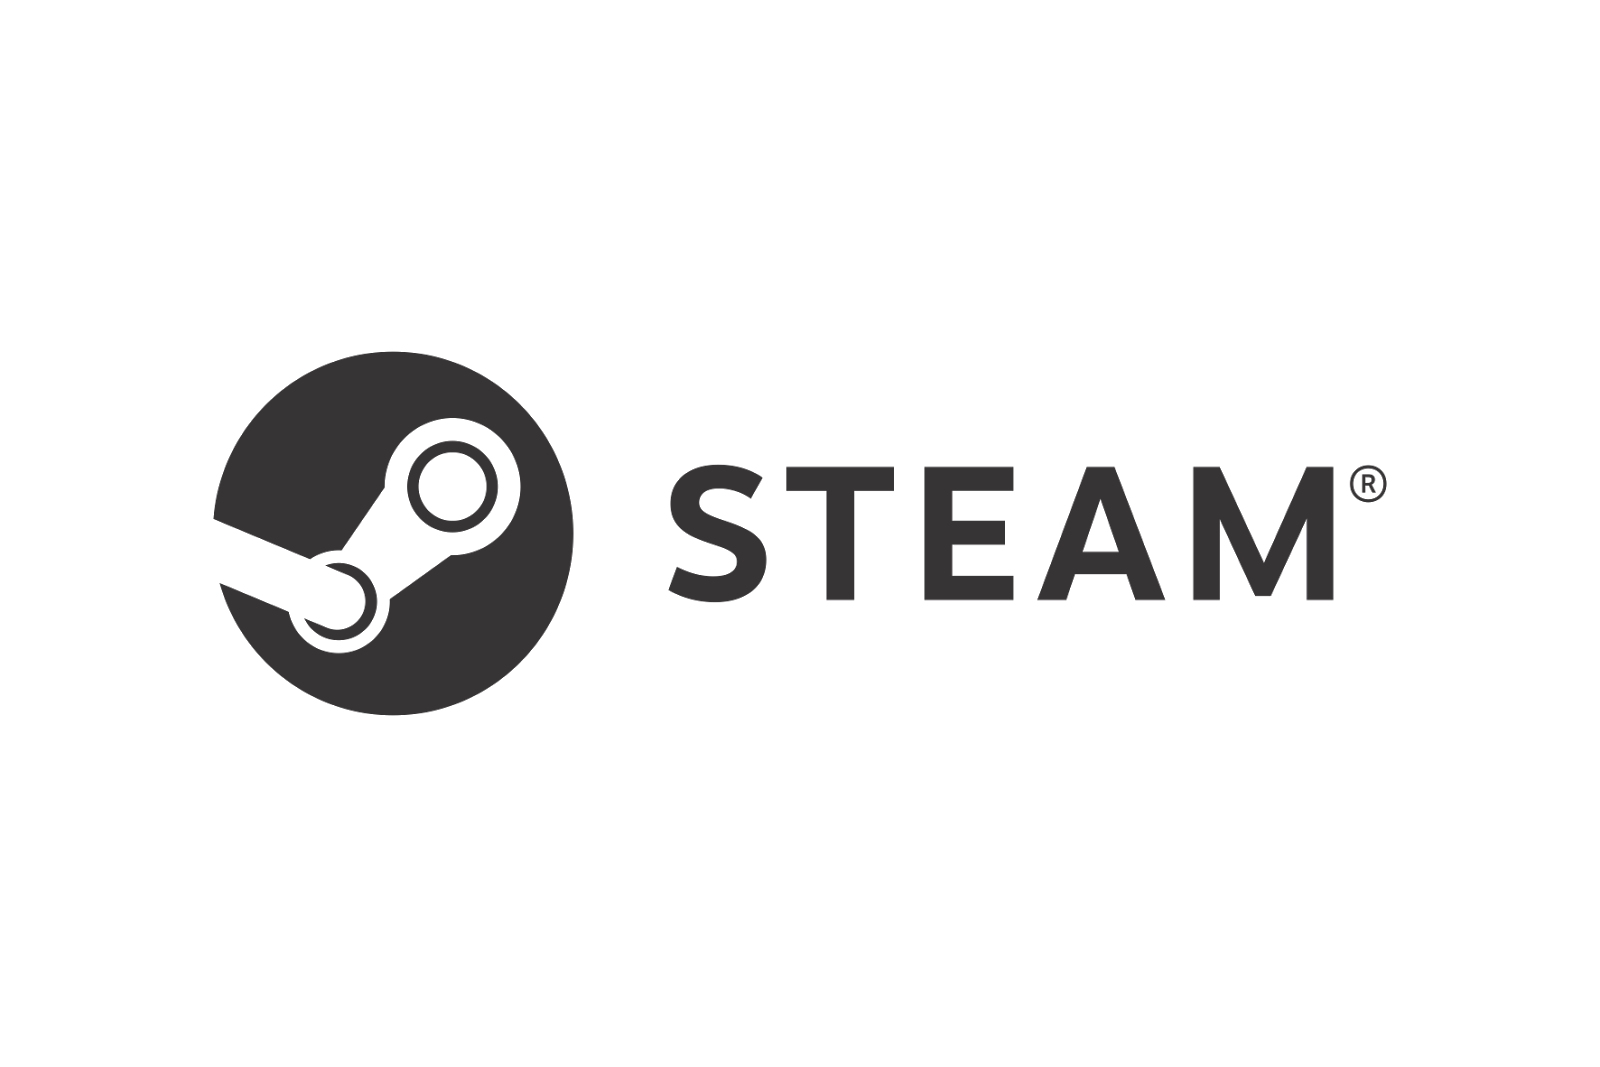 Steam Logo Wallpaper